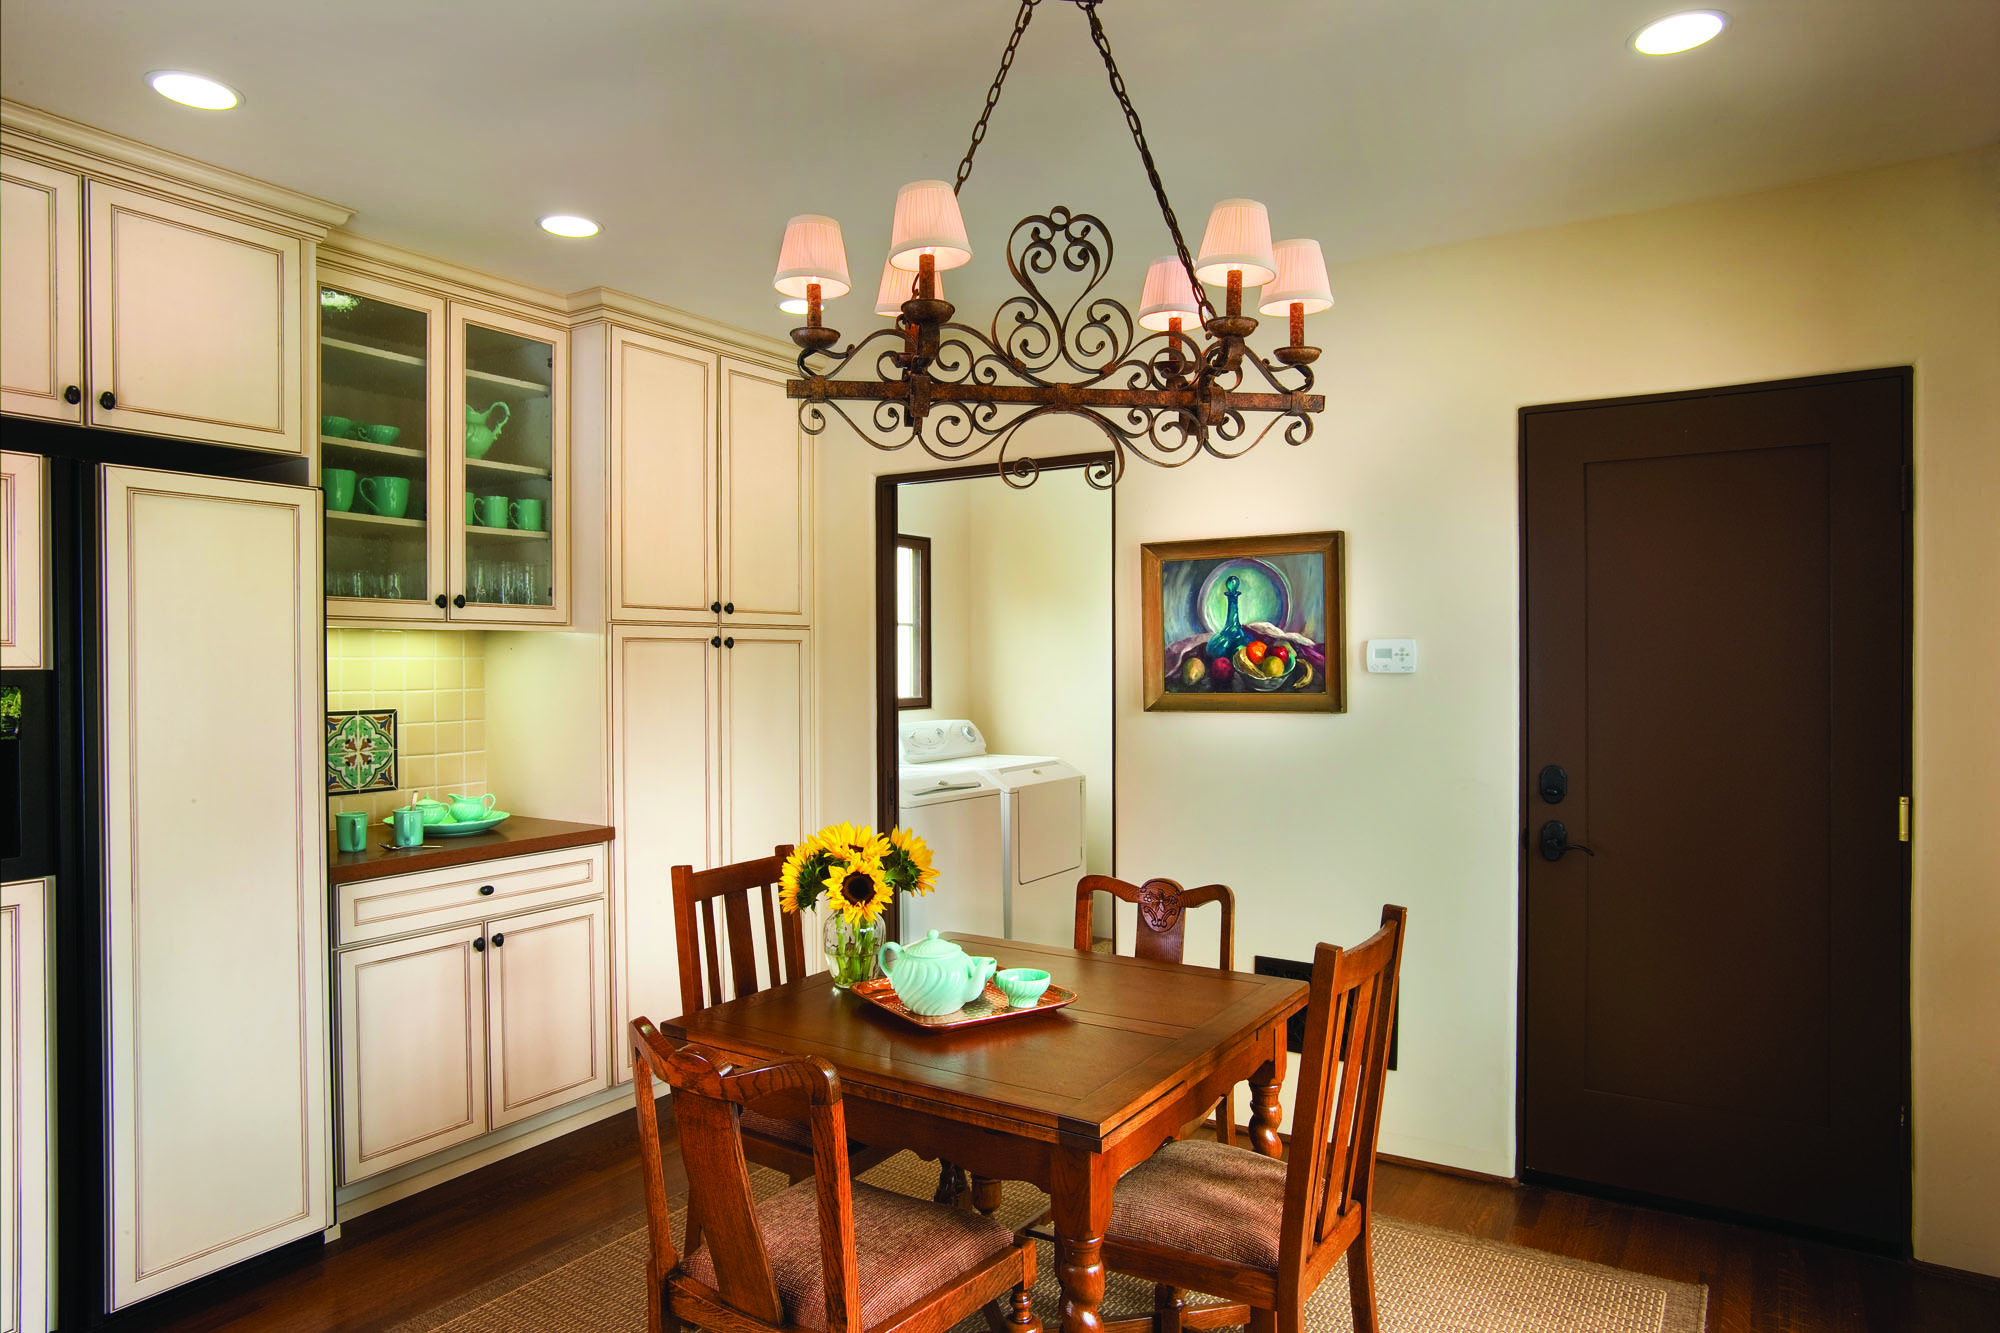 The breakfast room is part of the kitchen. A five-foot addition allowed for a new laundry room.